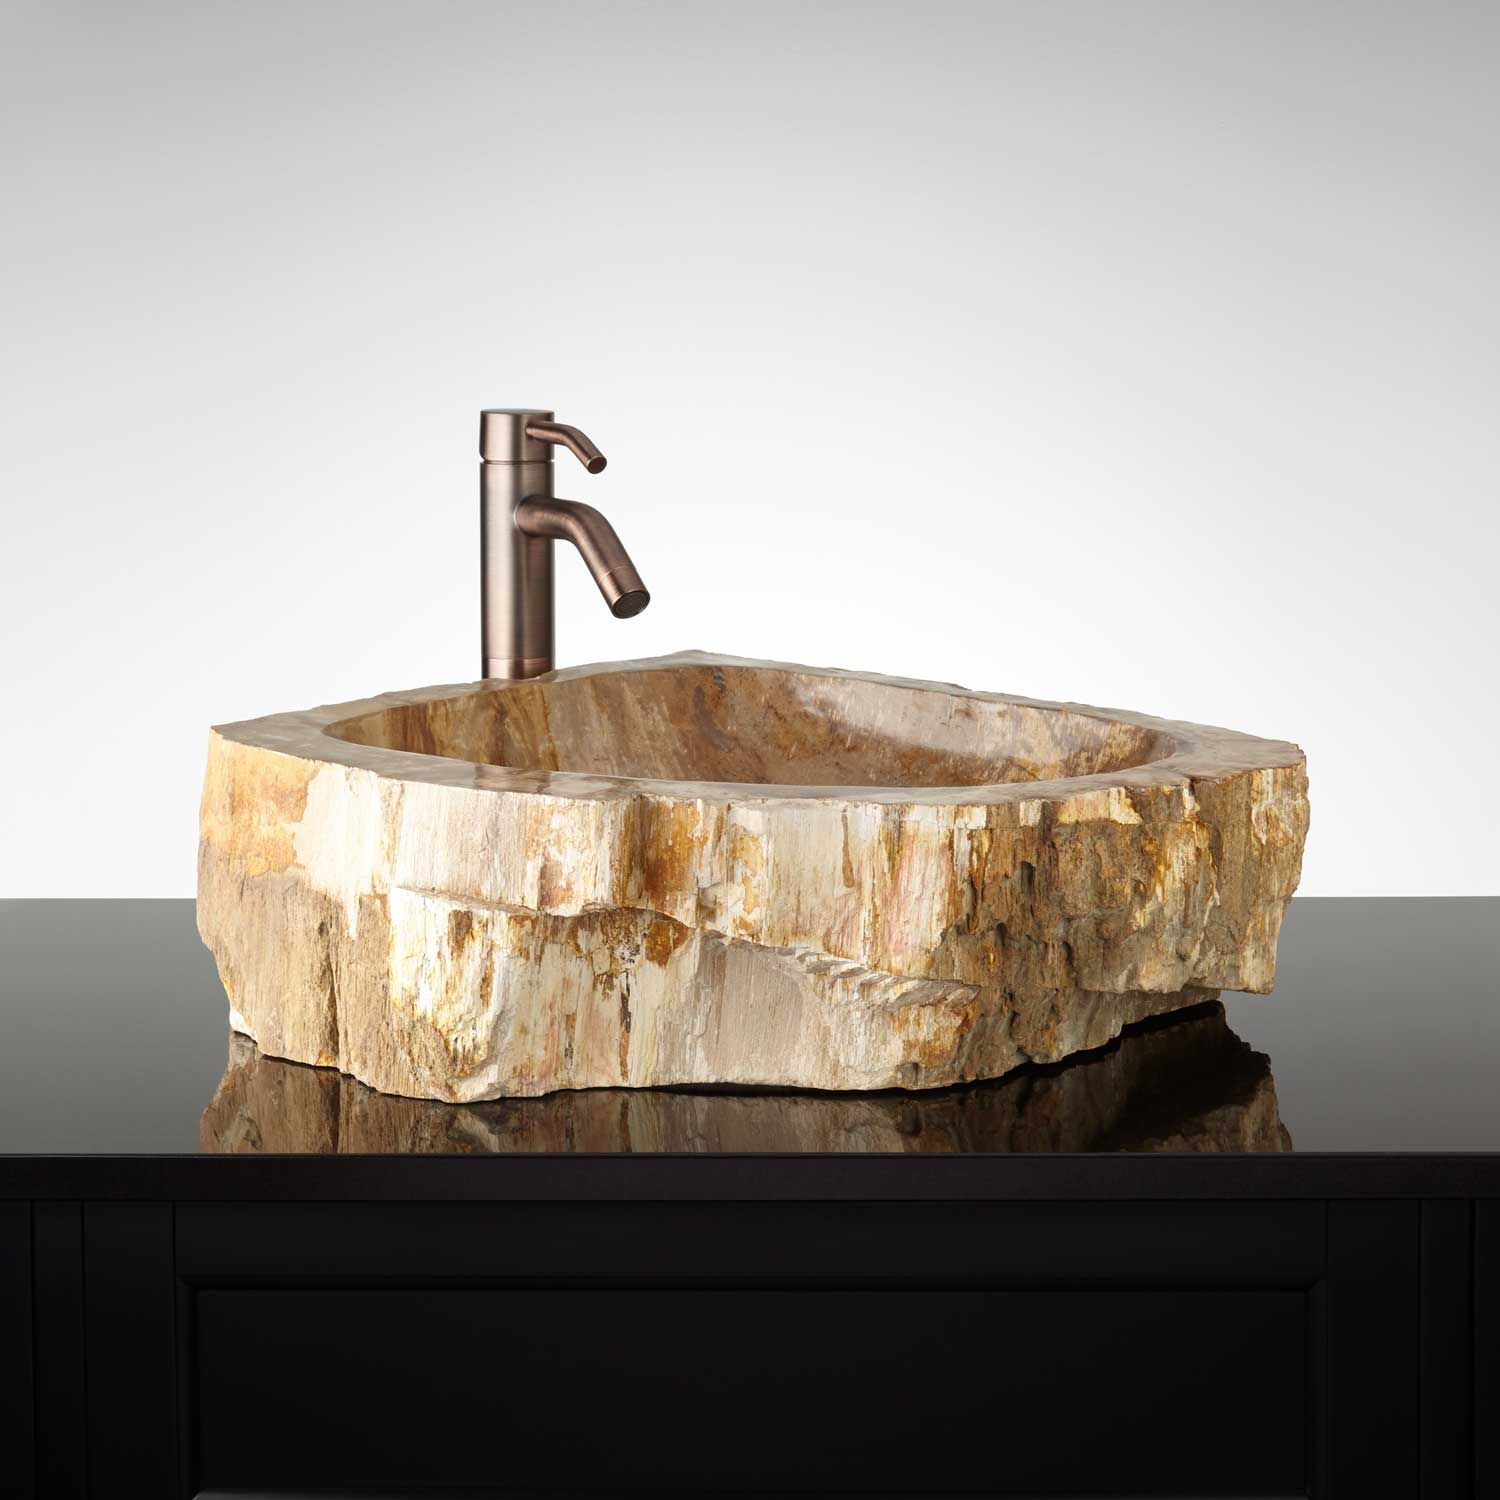 Bathroom Furniture, Fixtures And Decor. Bathroom FurnitureBathroom SinksPetrified  WoodVessel ...